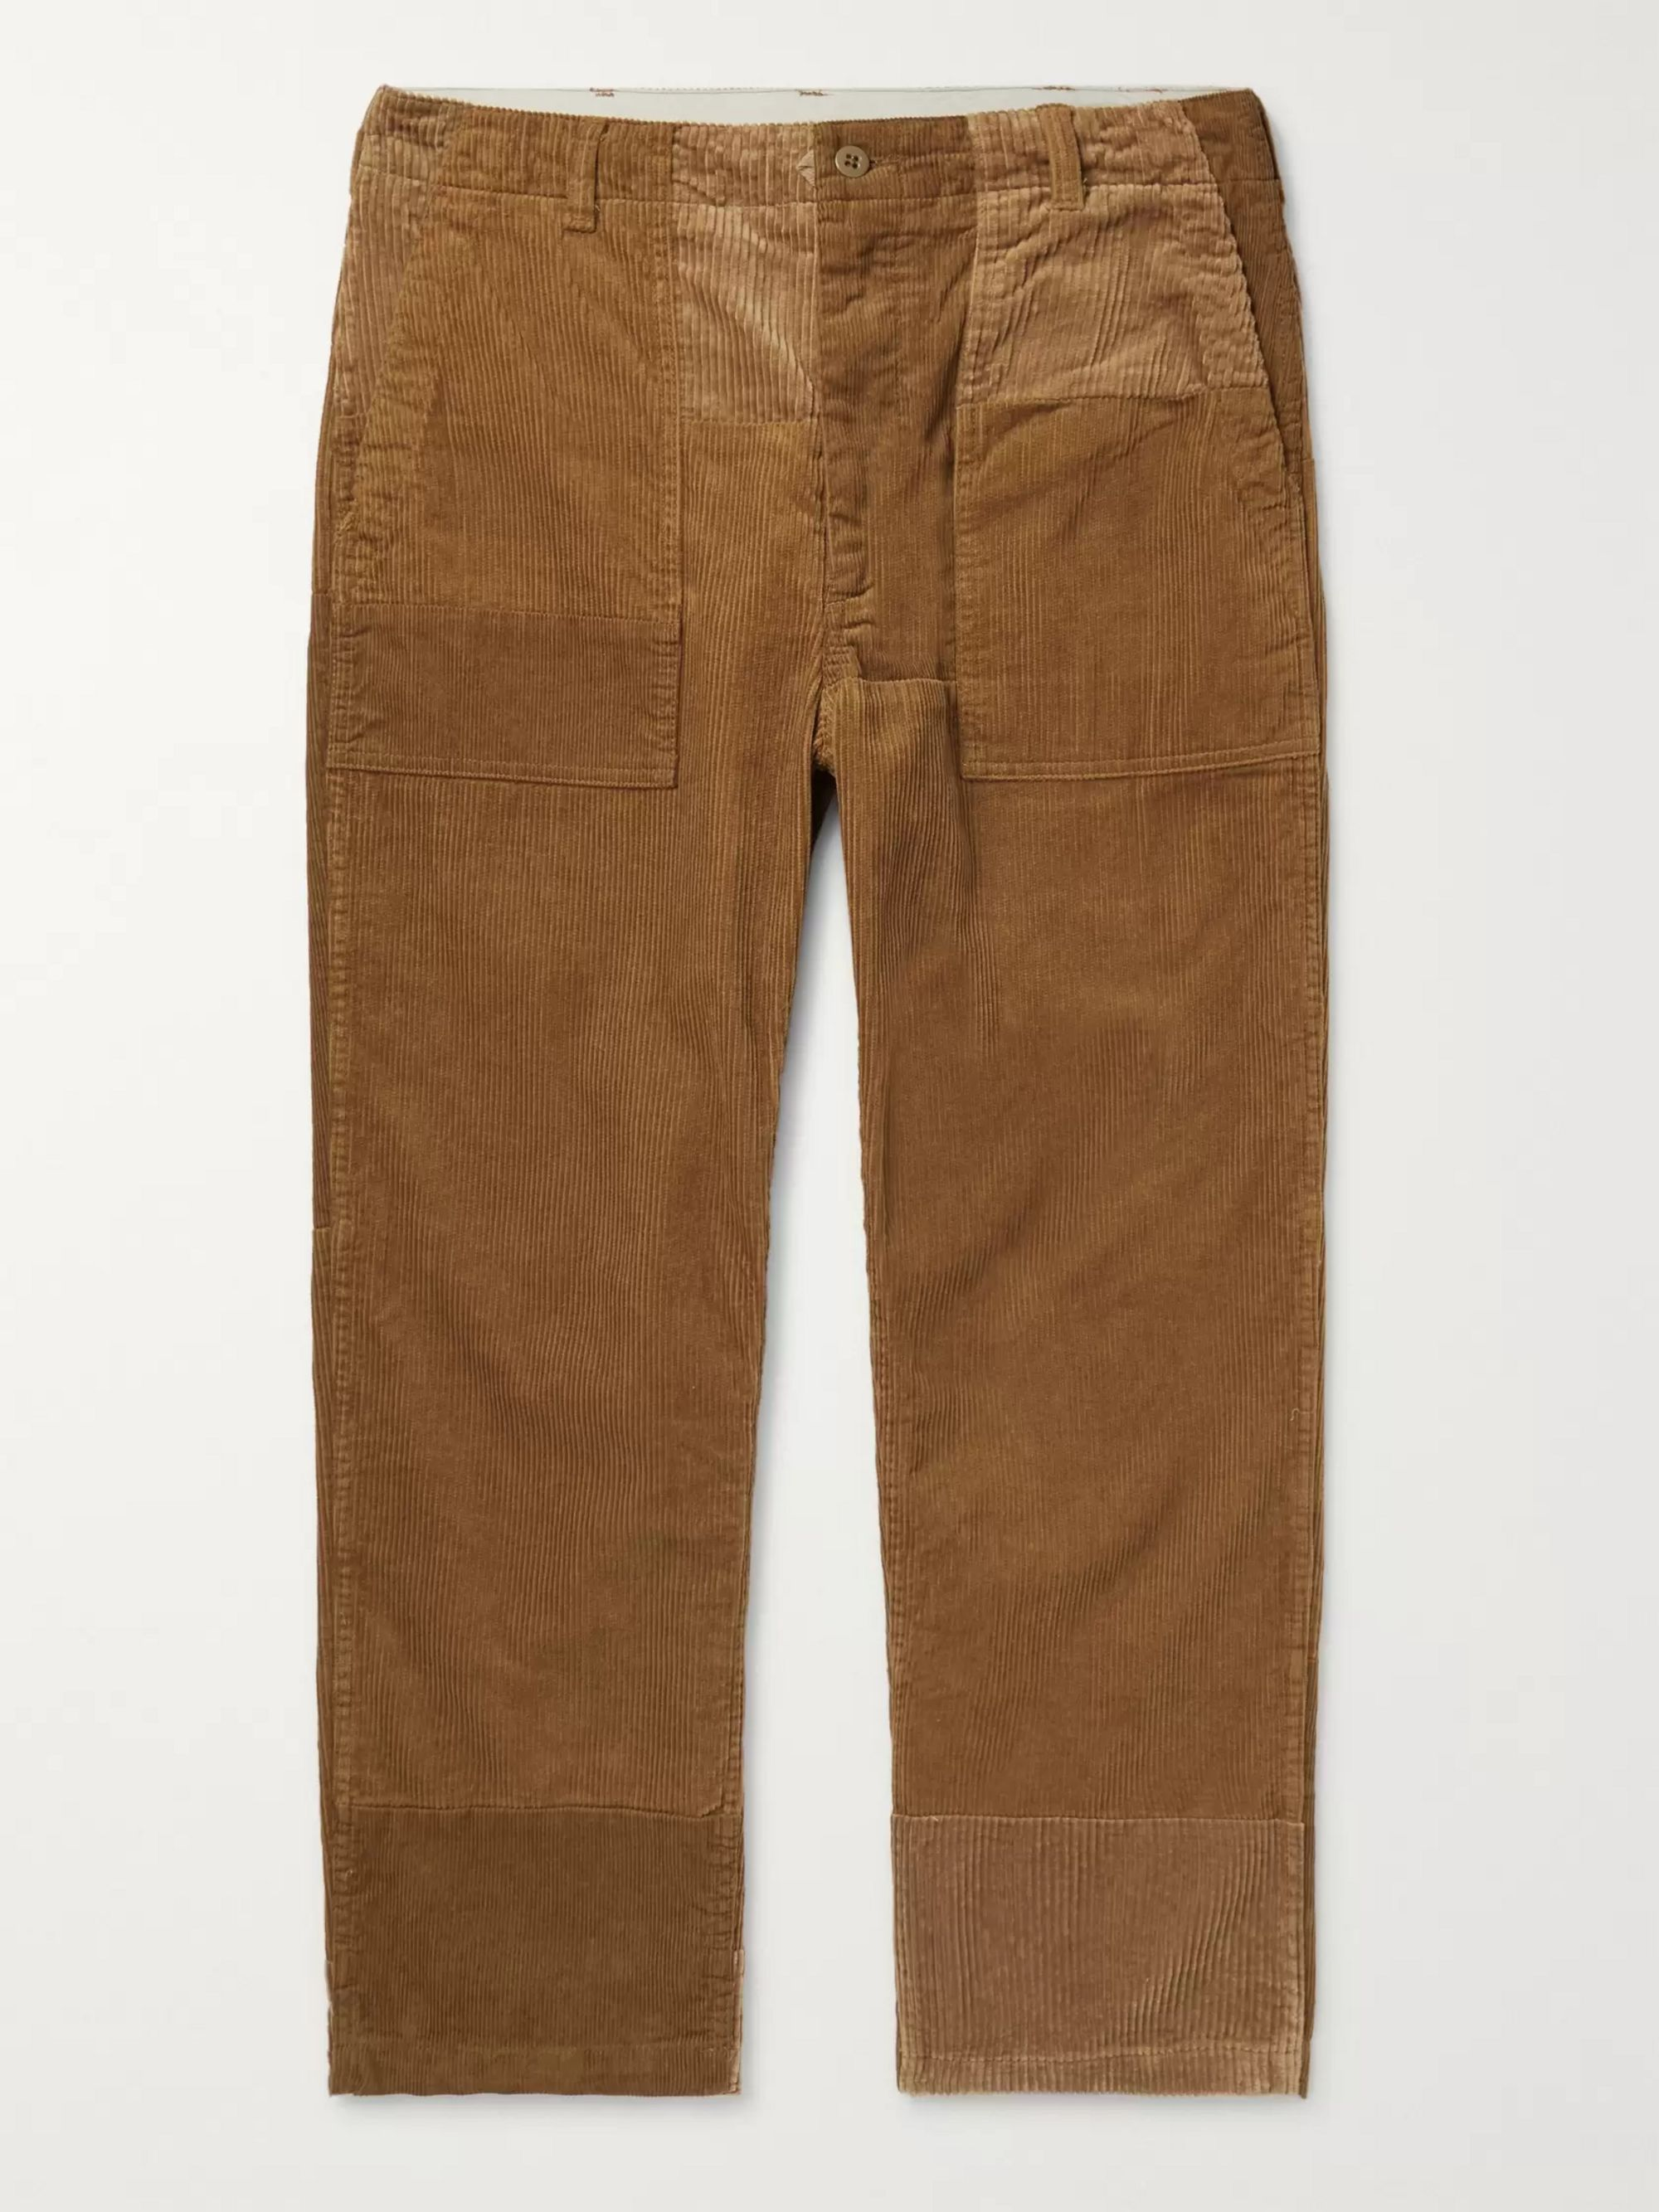 Patchwork Cotton Corduroy Trousers by Engineered Garments